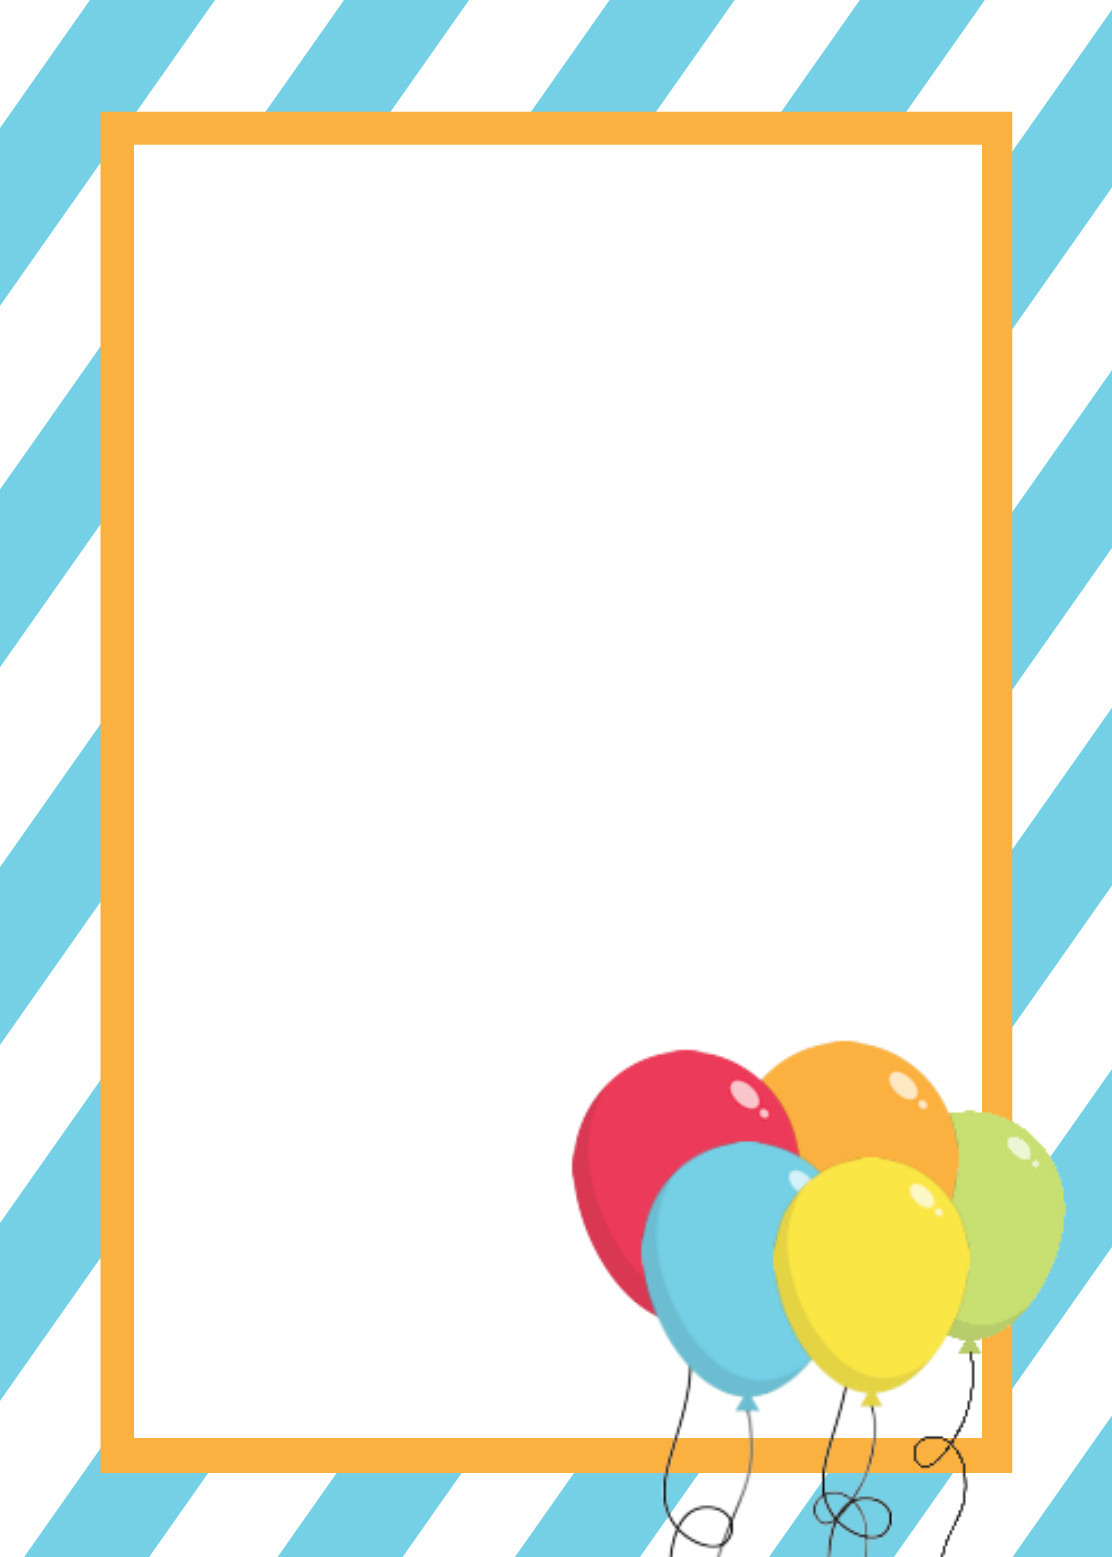 Best ideas about Free Birthday Card Template . Save or Pin Free Printable Birthday Invitation Templates Now.